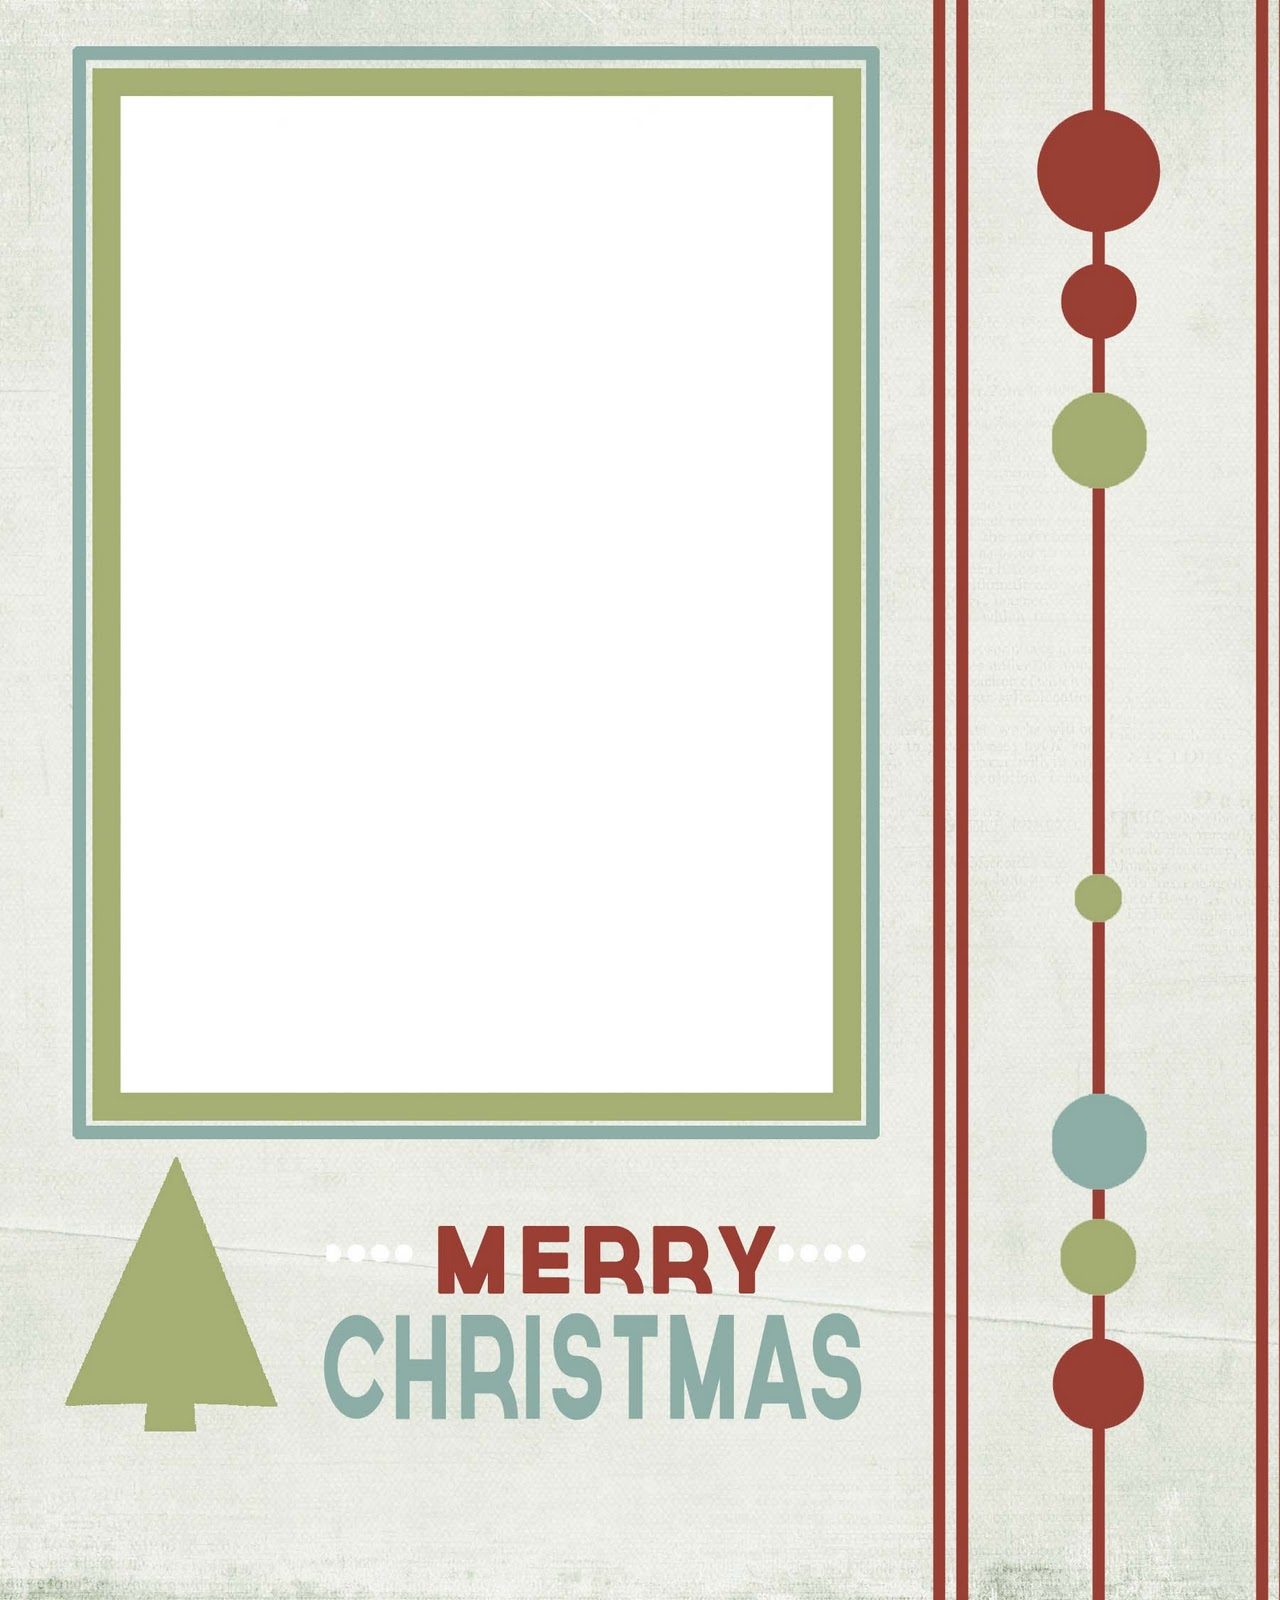 Dashing image pertaining to christmas templates printable